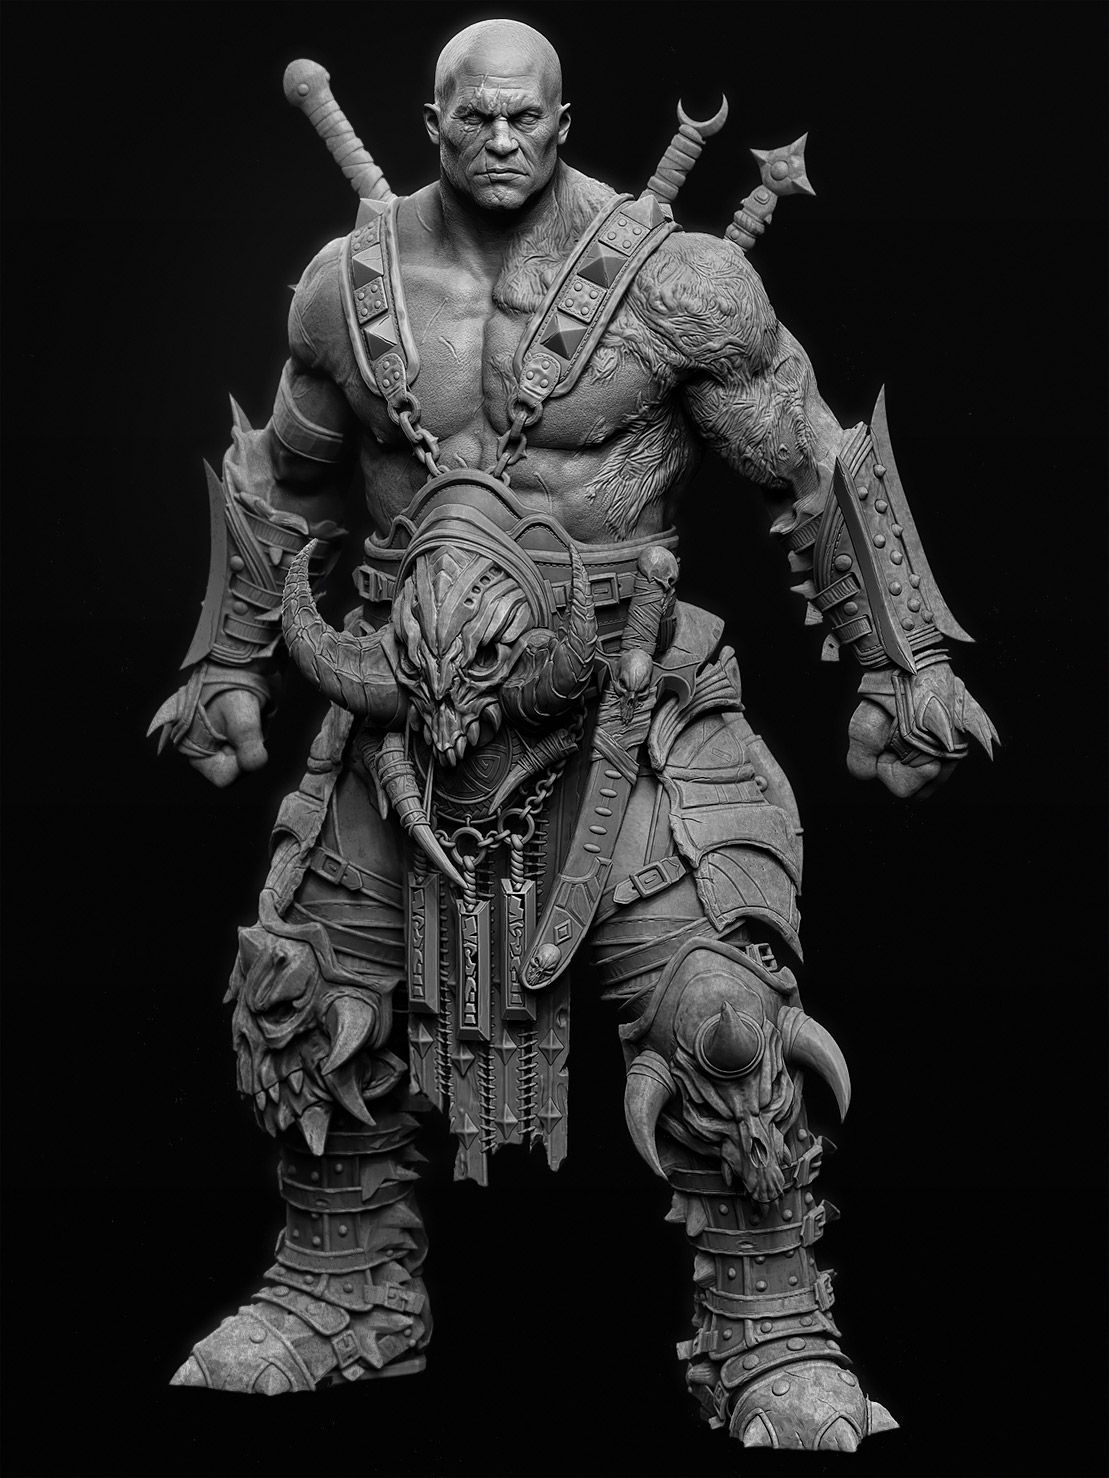 c89d464d2f2 Barbarian 3D Breakdowns by by Igor Catto IGOR CATTO is a character artist  from São Paulo, Brazil. In